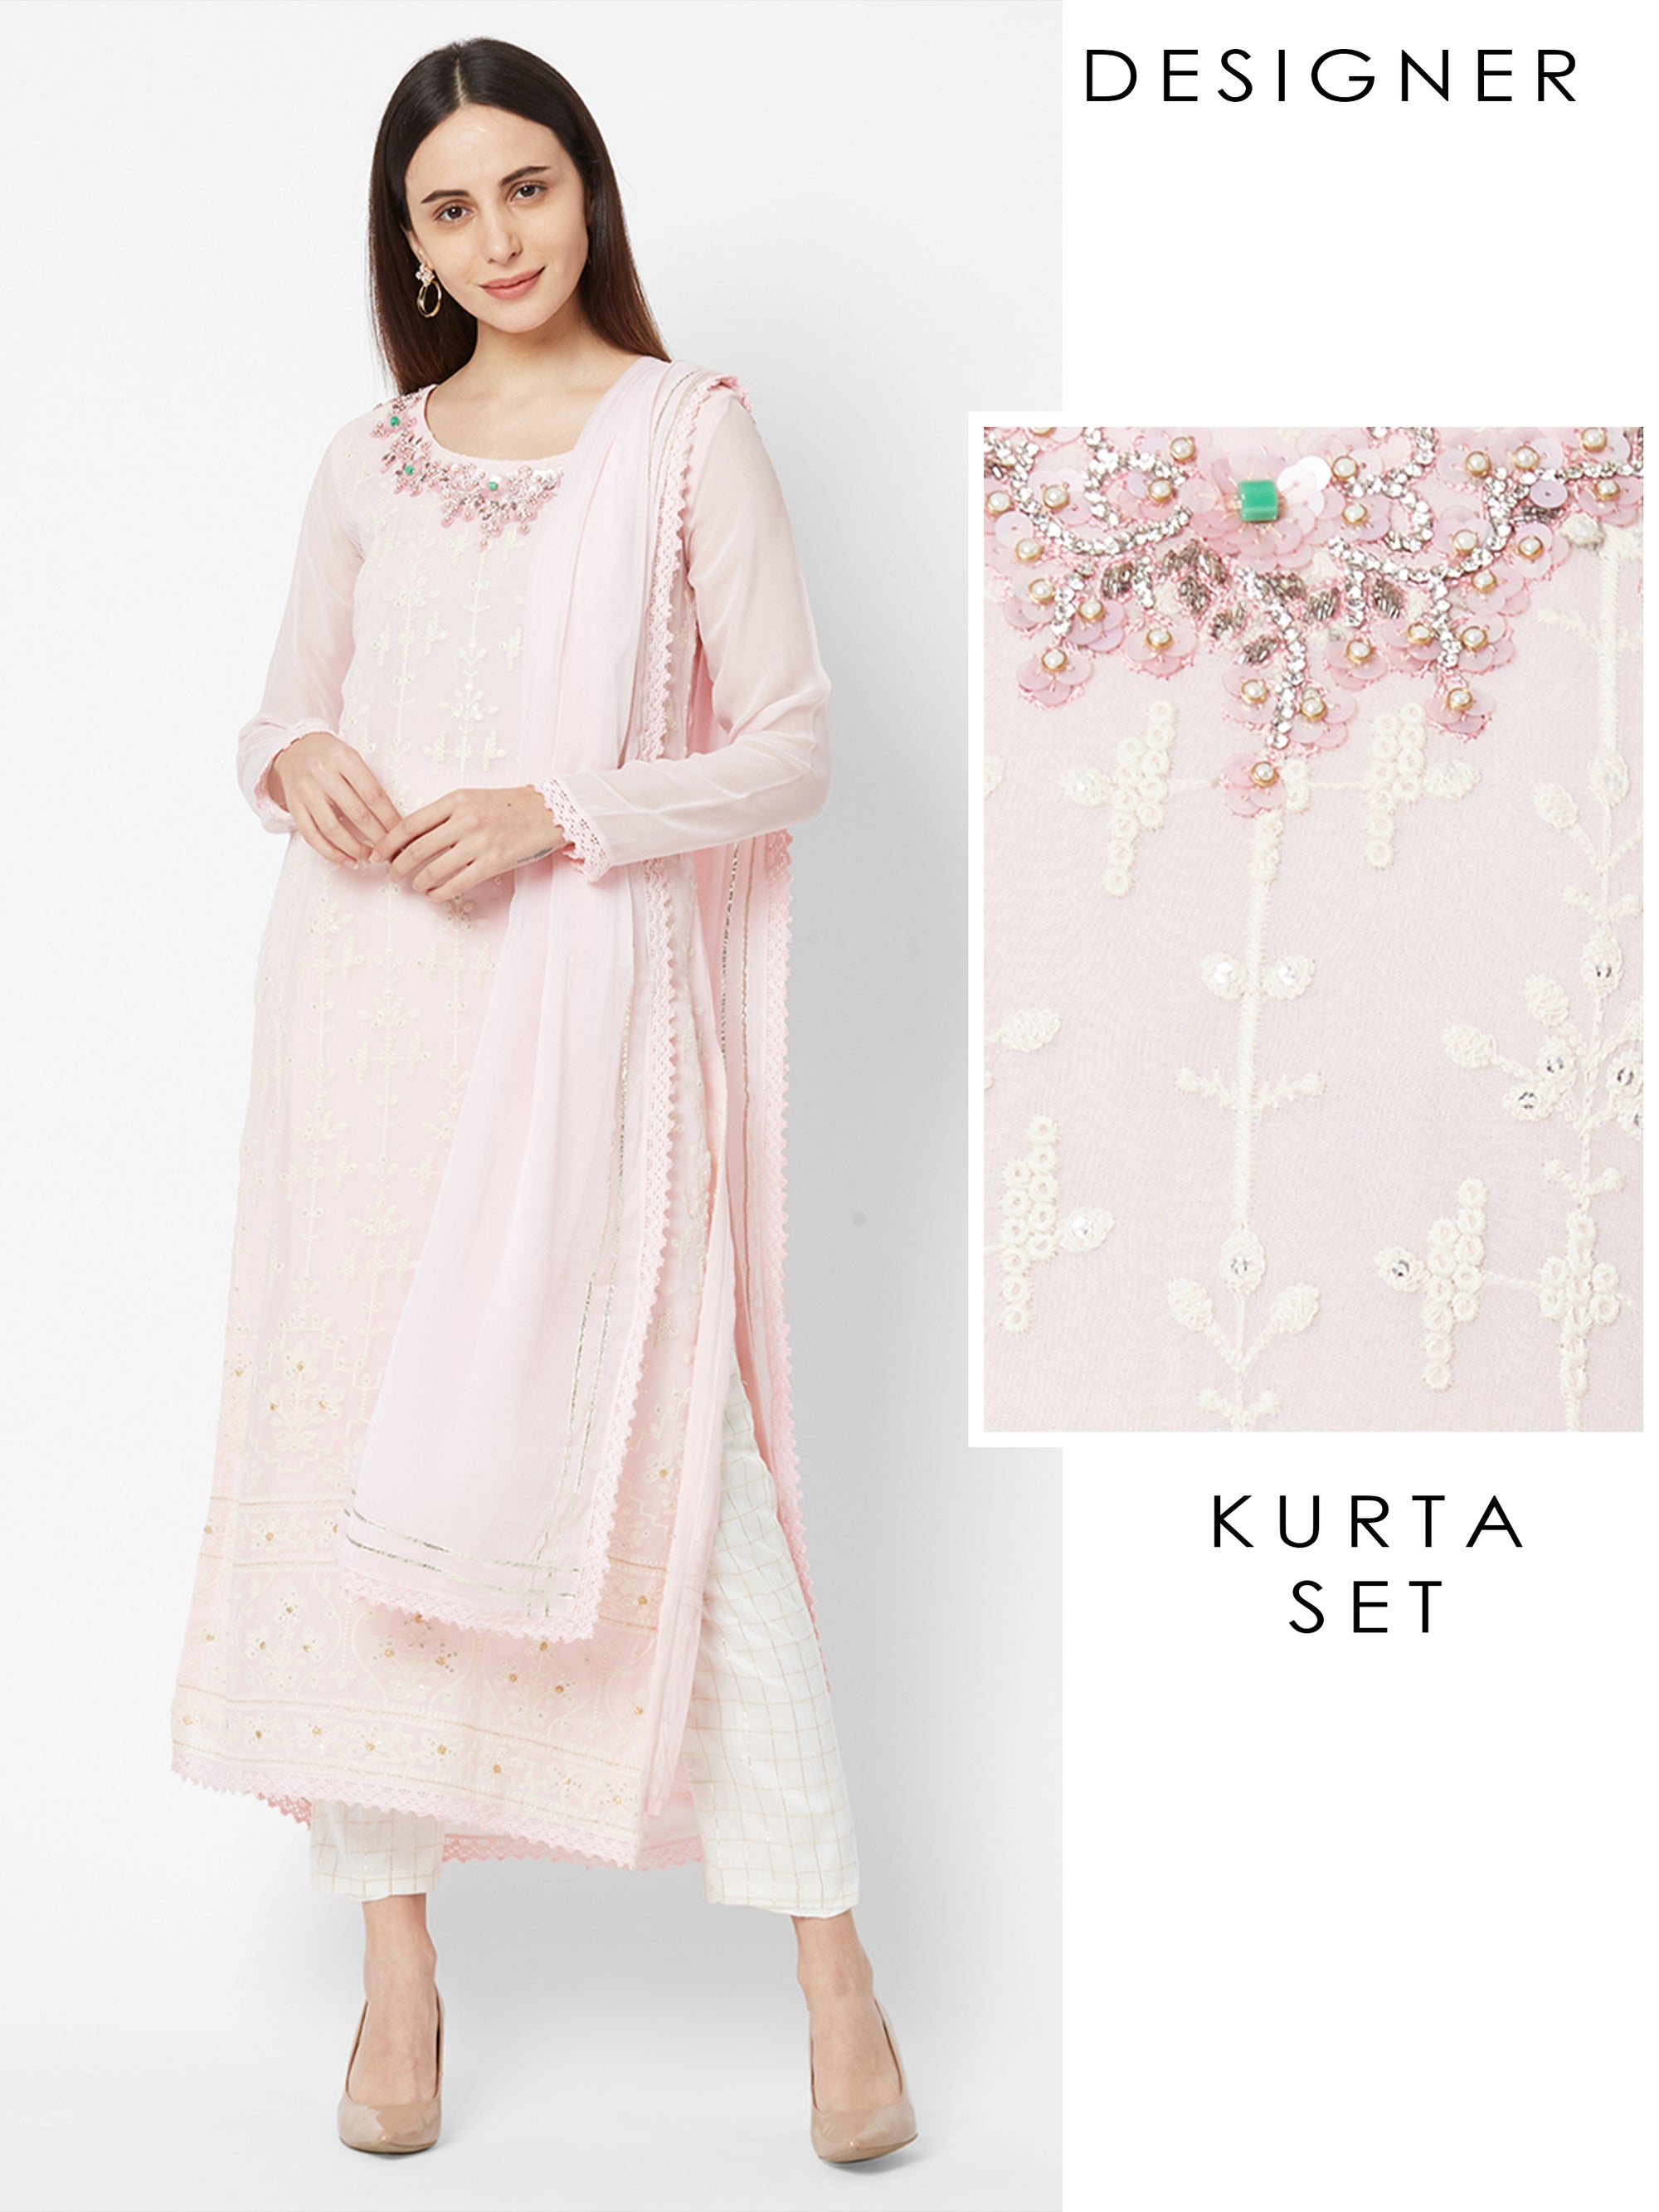 Rhinestones & Beads Embellished Designer Kurta with Checkered Pant & Dupatta